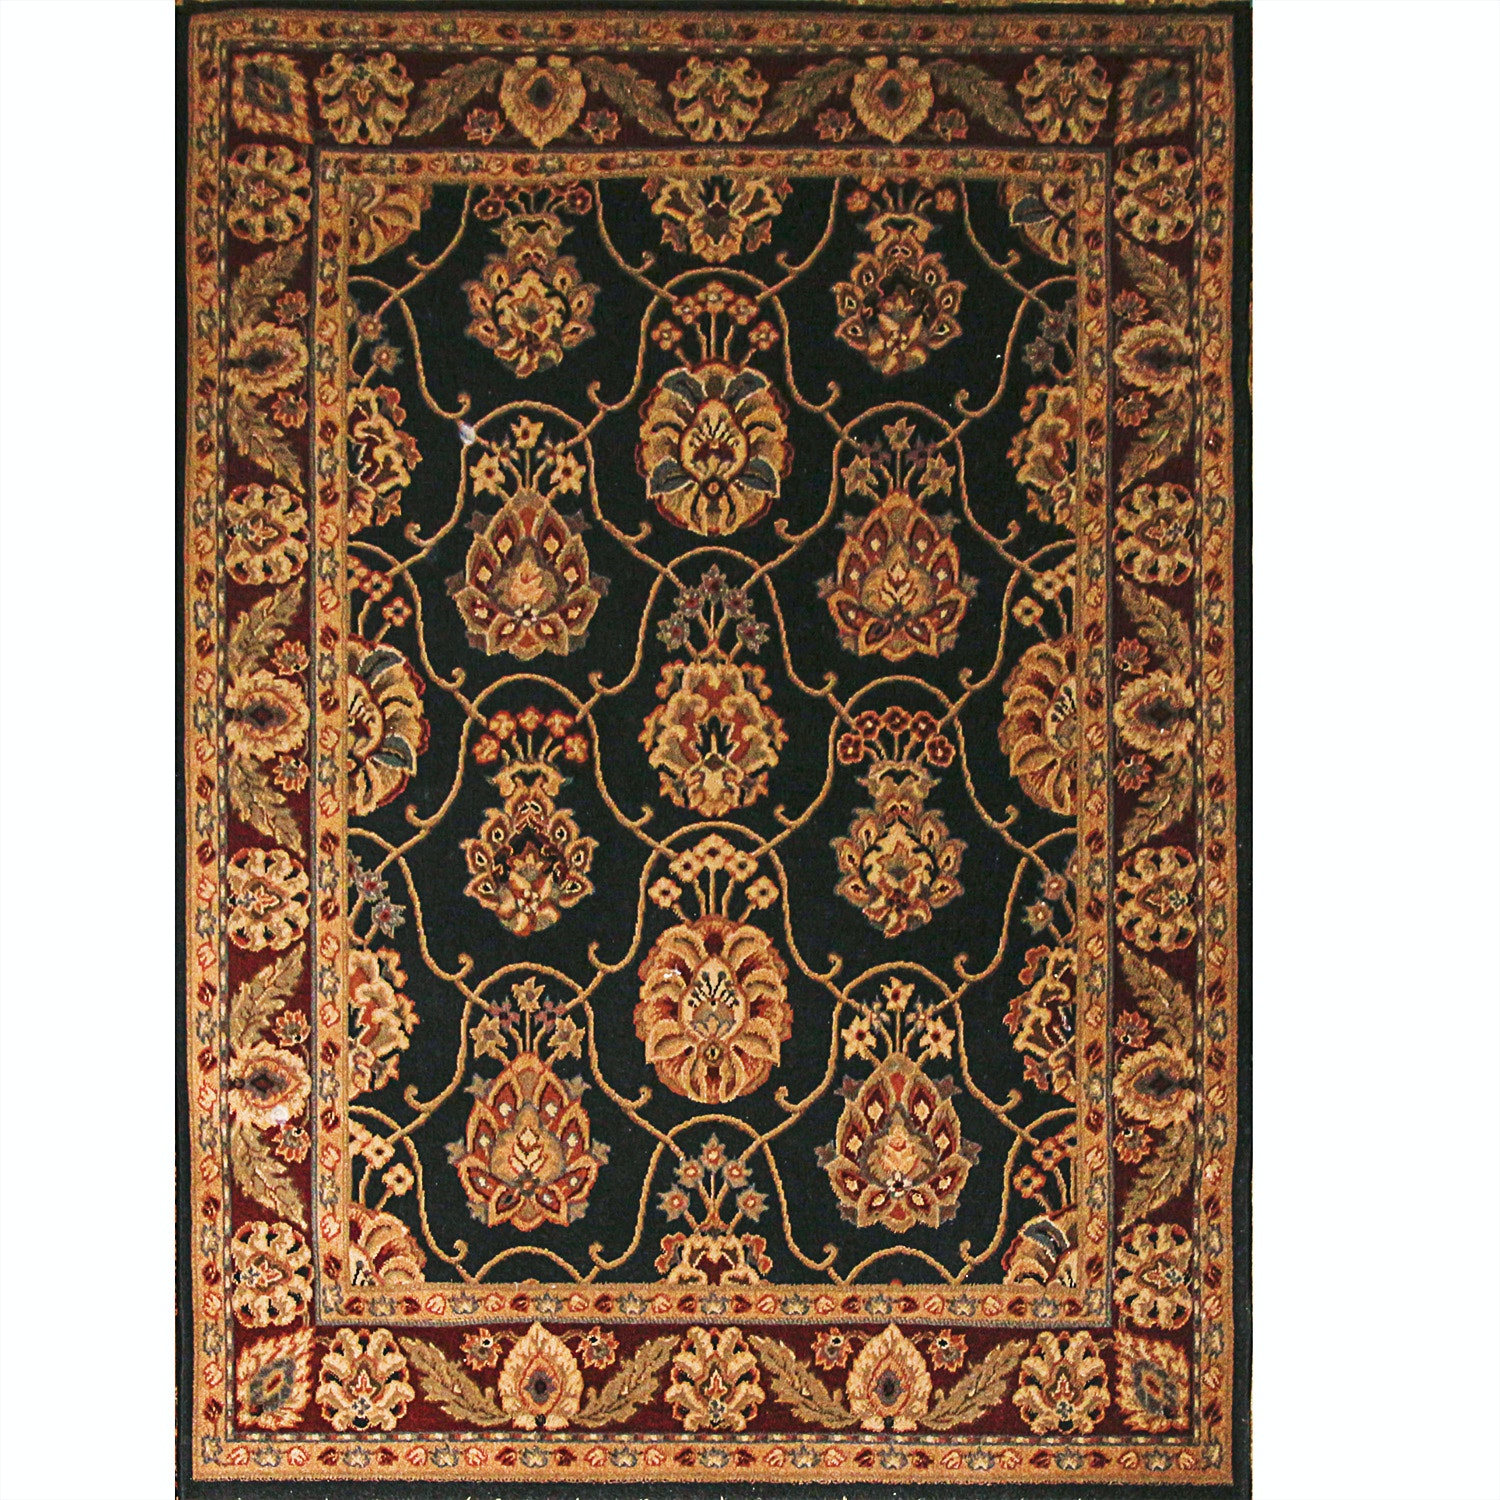 Power Loomed Persian-Style Area Rug